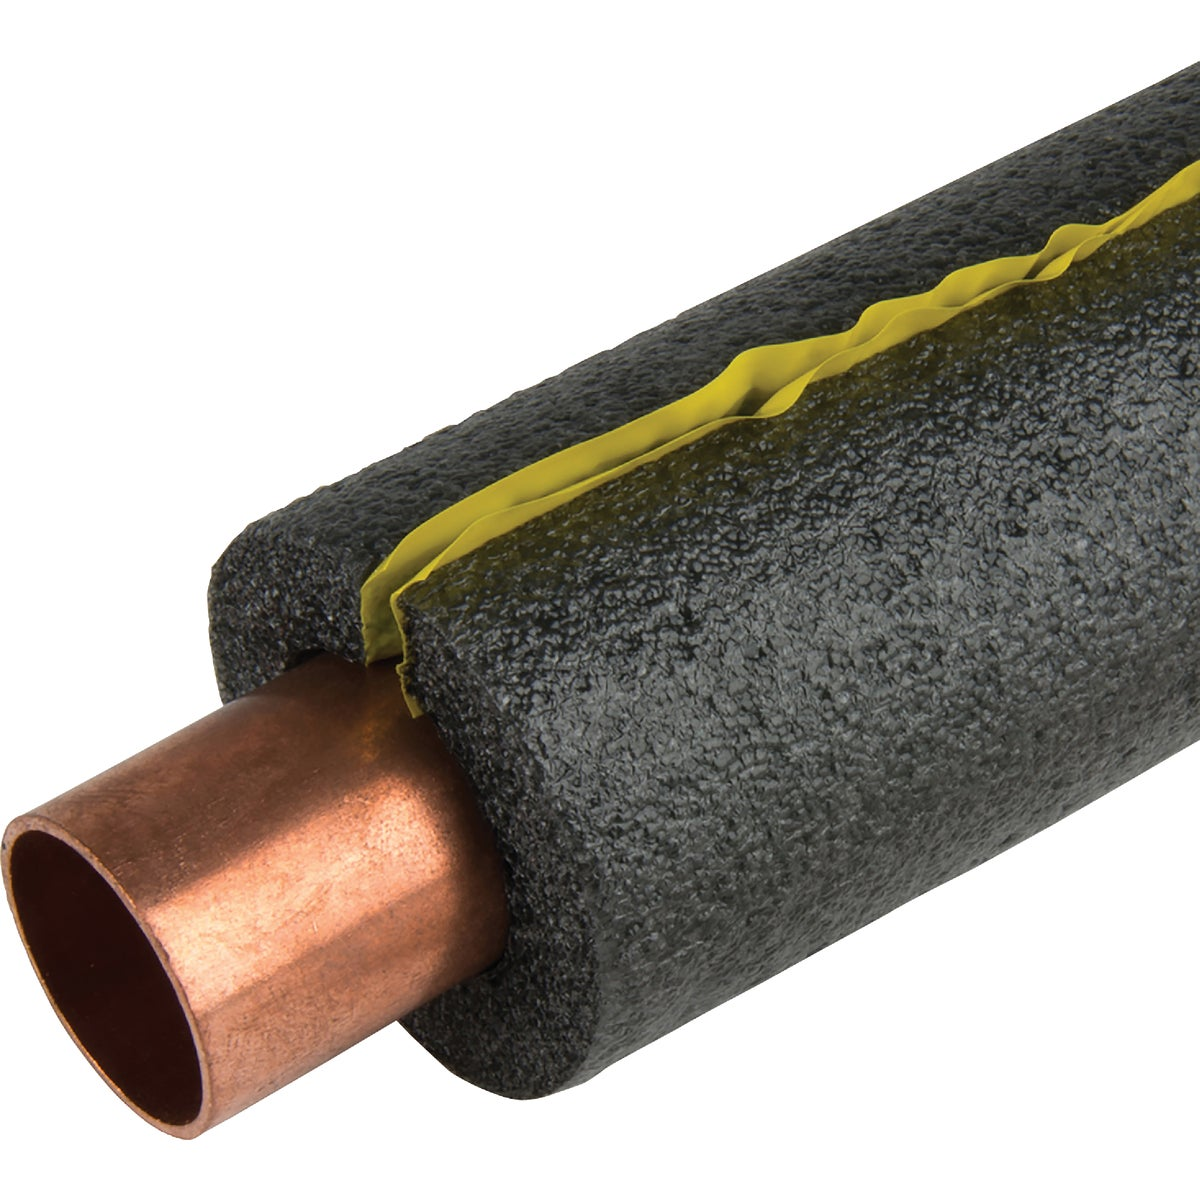 Pipe Insulation & Heat Tape